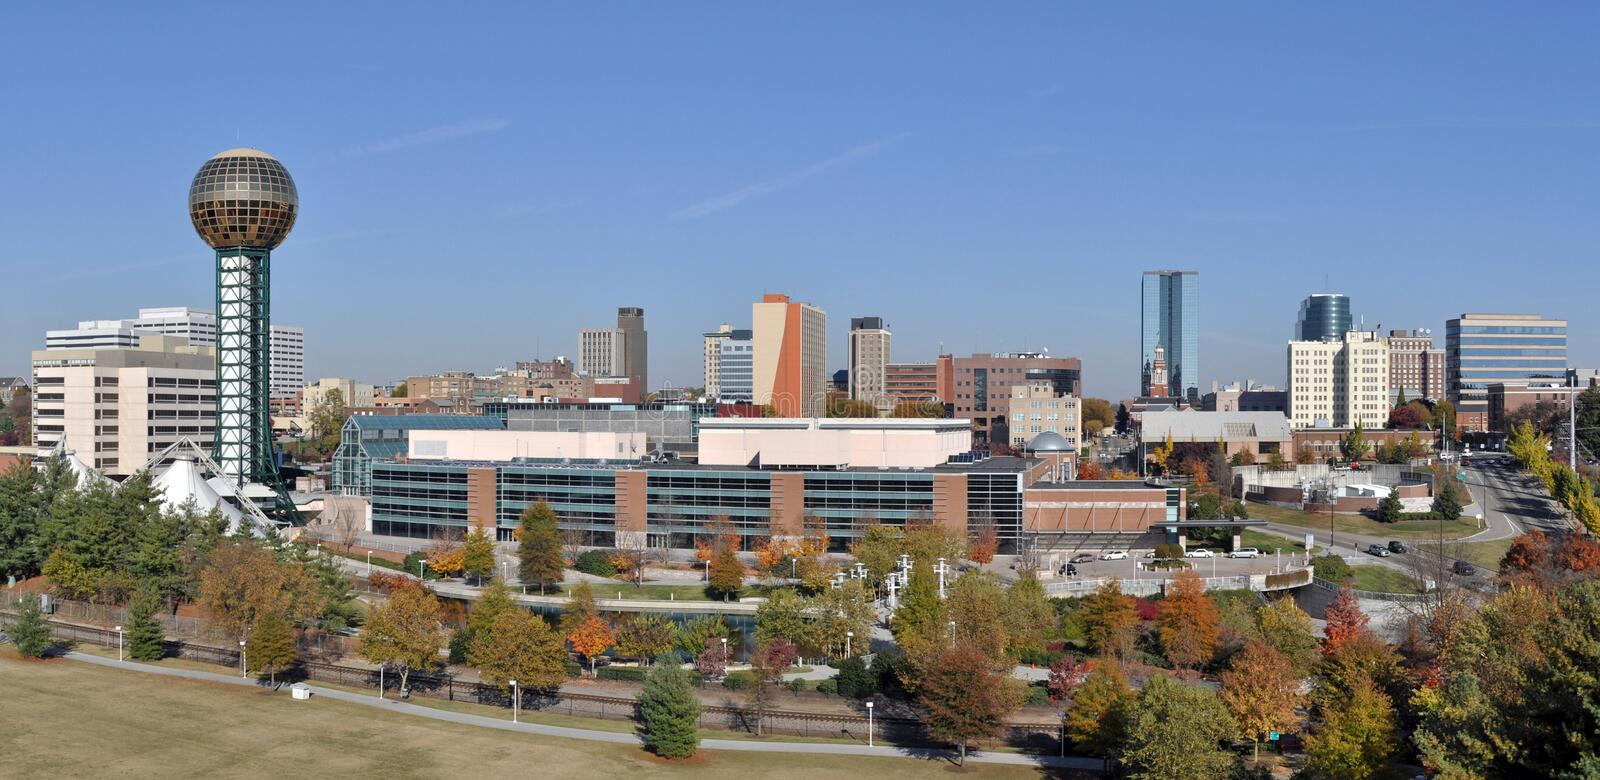 Download Knoxville stock photo. Image of cityscape, knoxville - 16970096